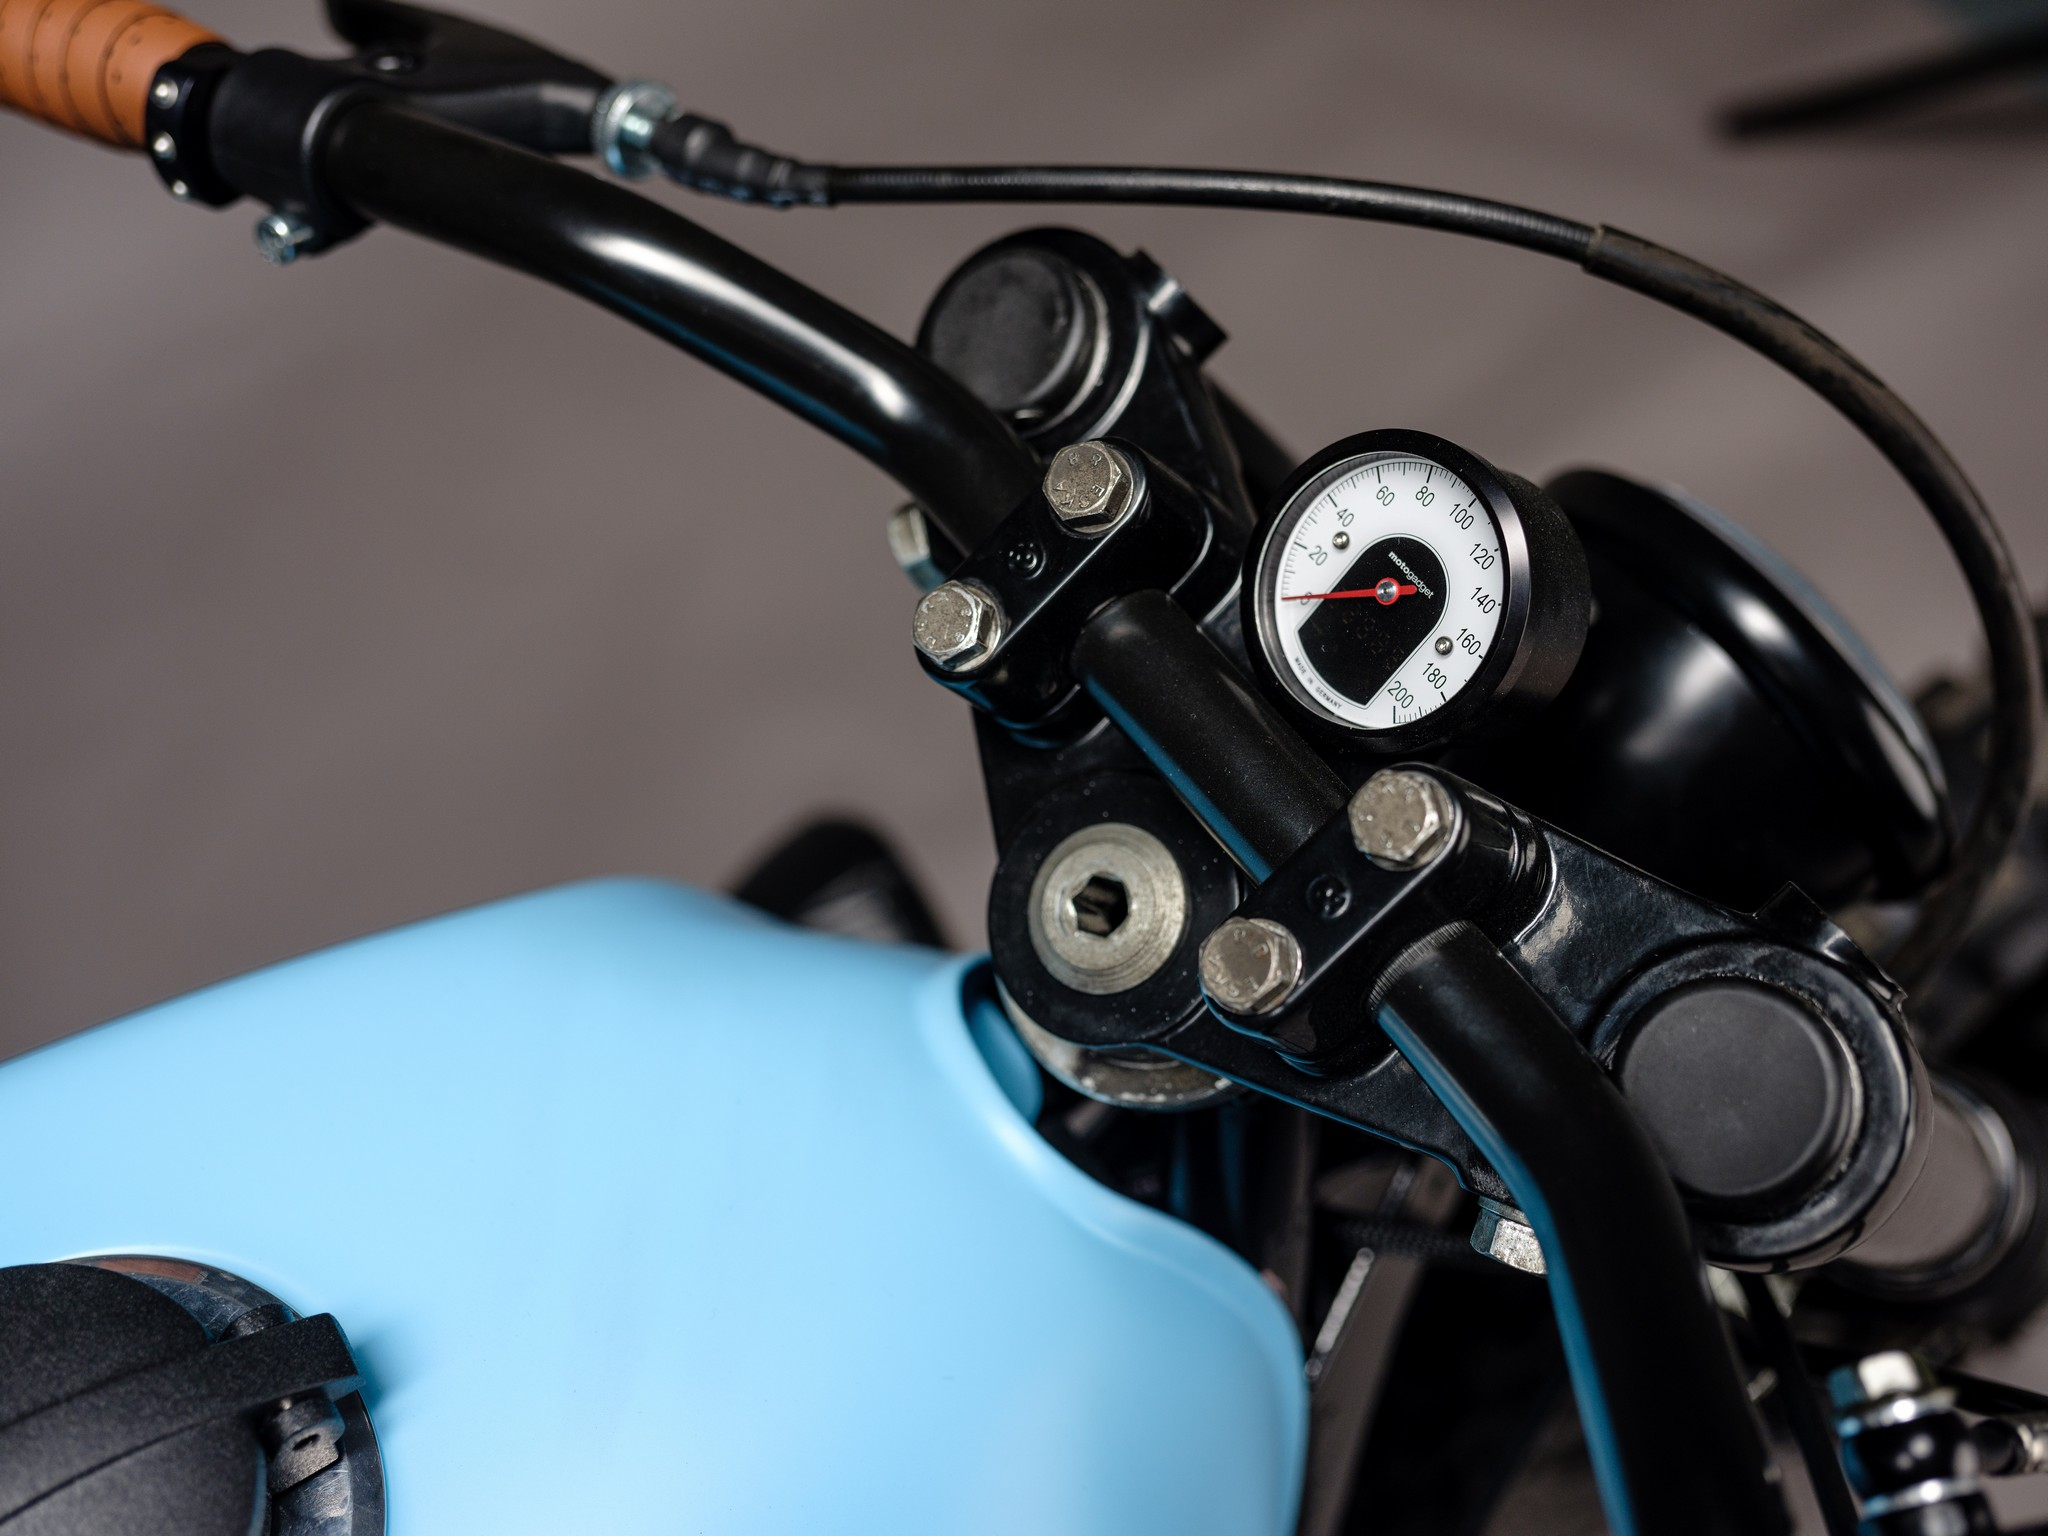 Seat detail for custom 1982 BMW R65 Scrambler from AMP Motorcycles in Germany